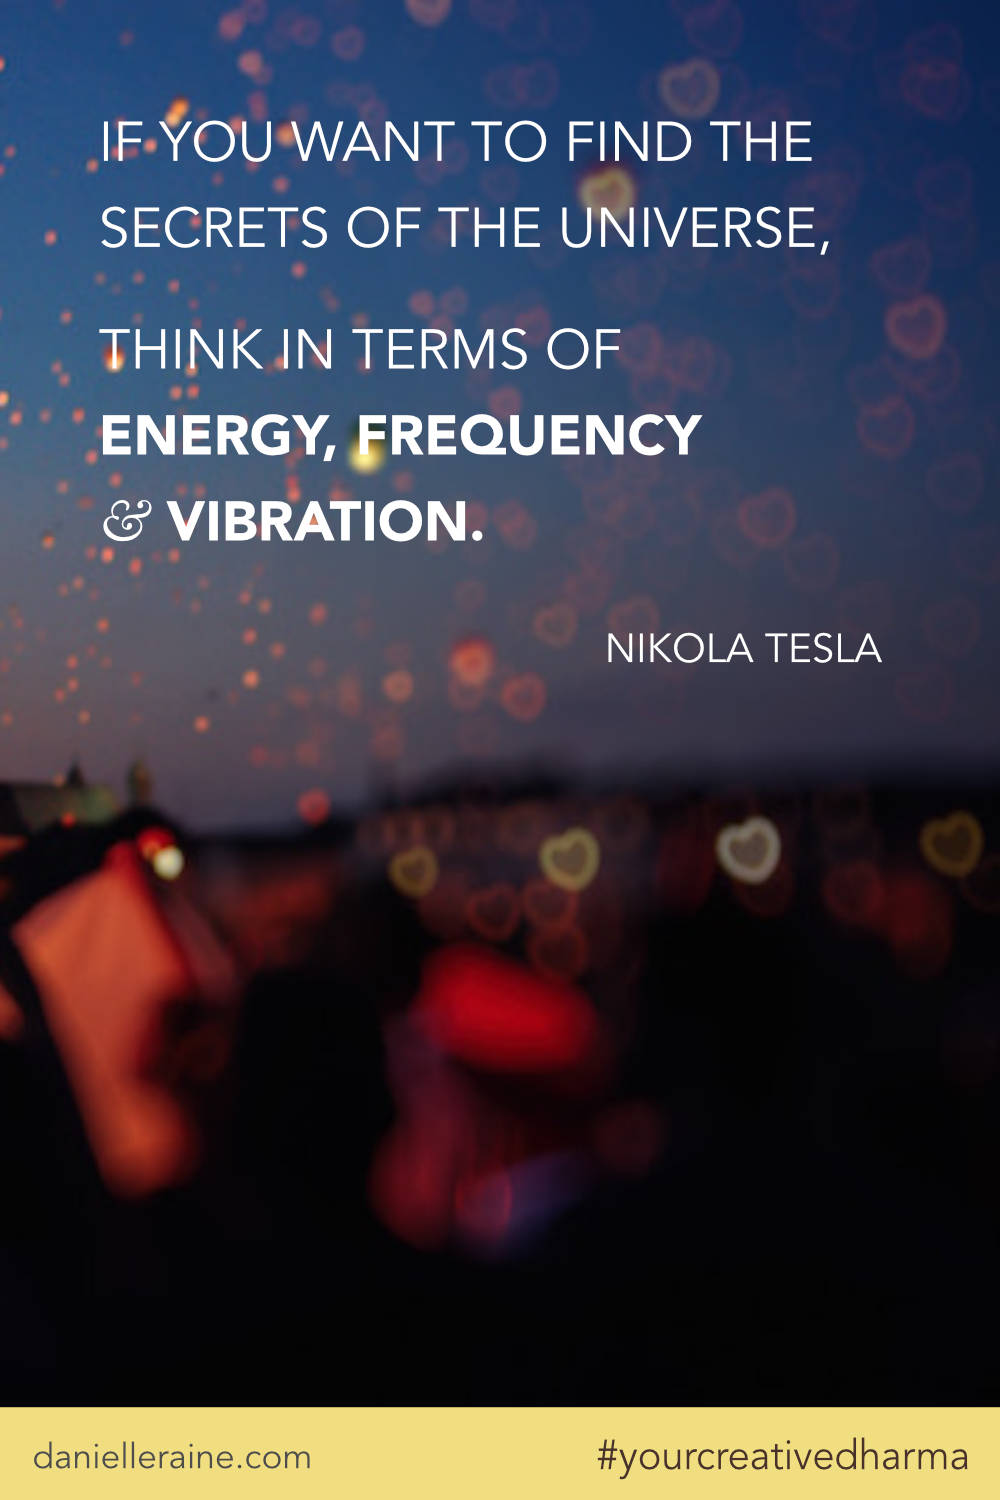 Your Creative Dharma quote nikola tesla frequency universe